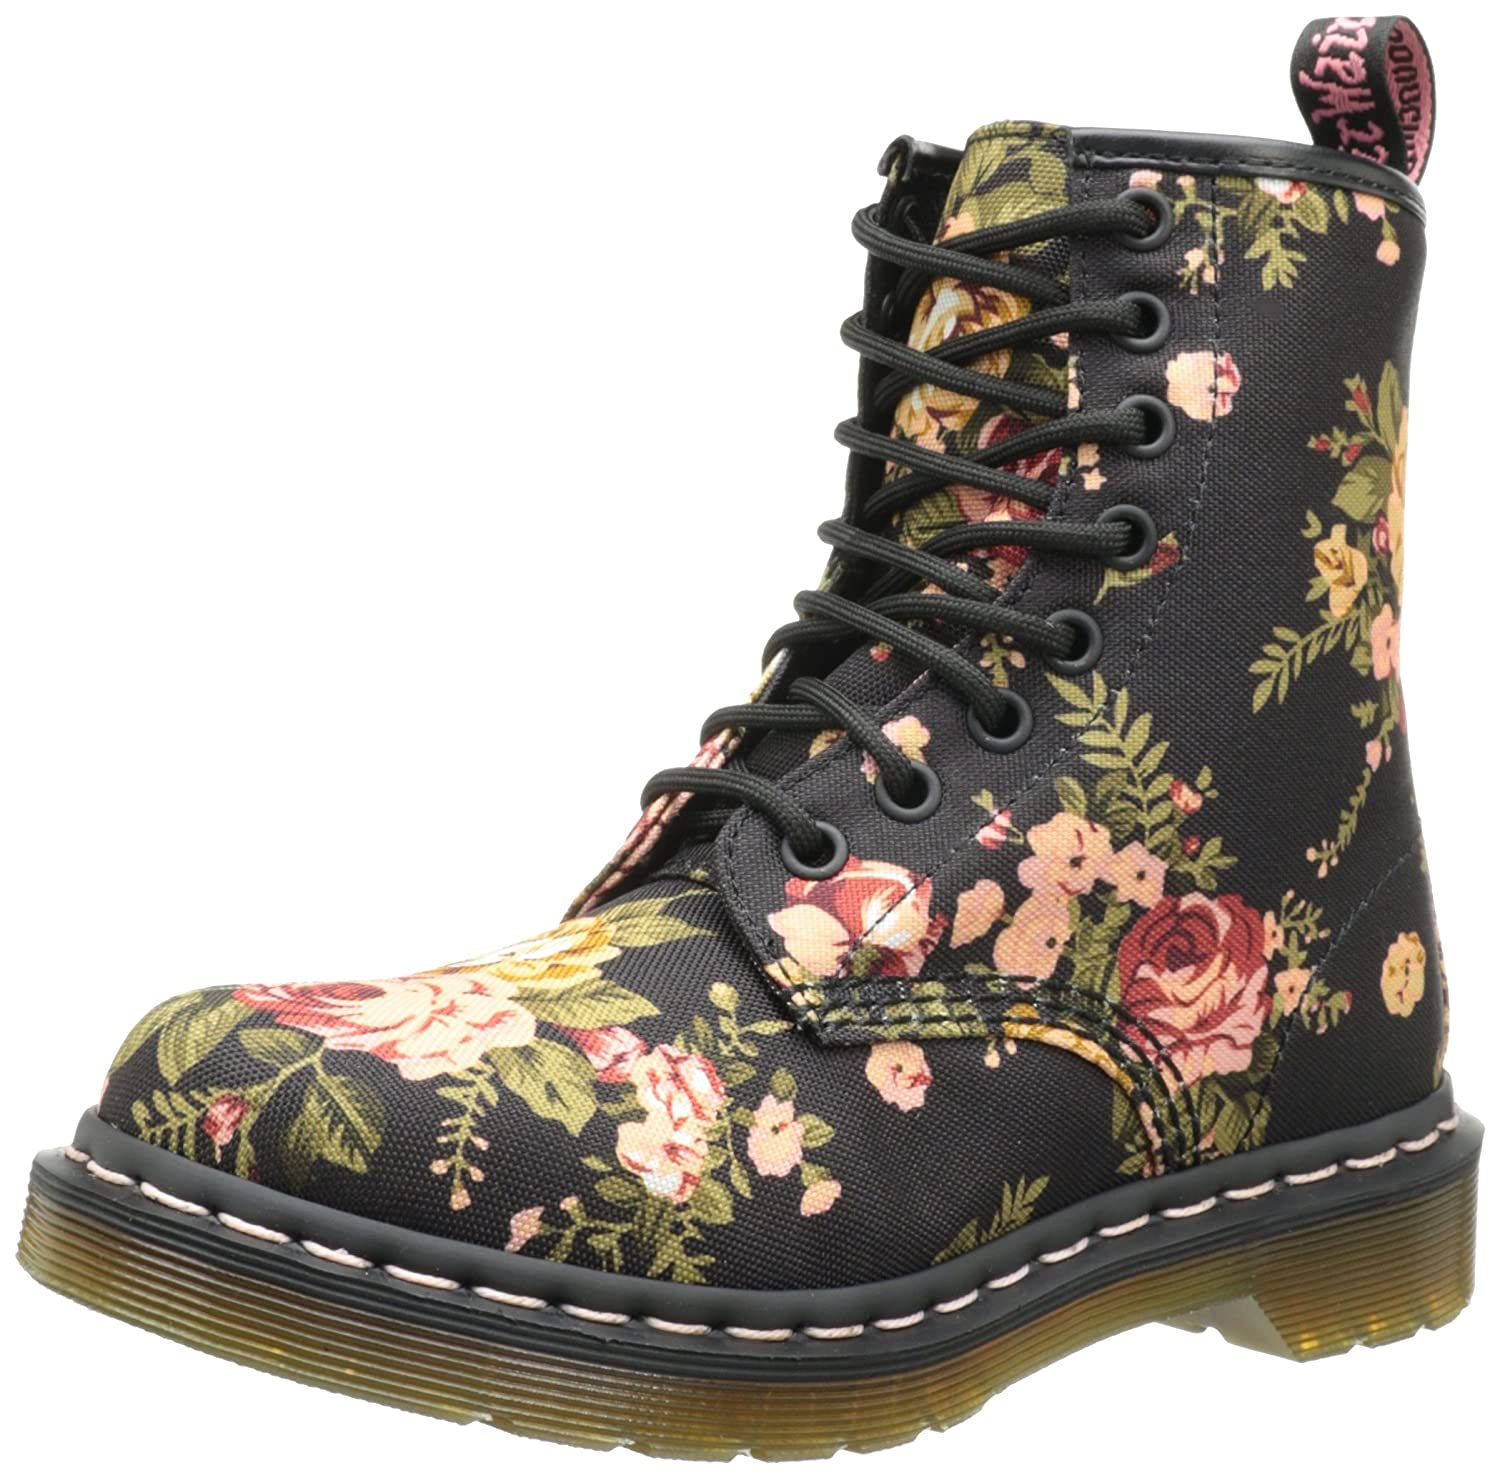 Dr. Martens Women's 1460 Re-Invented Victorian Print Lace Up Boot B00EMG3IKC 7 B(M) US|Black